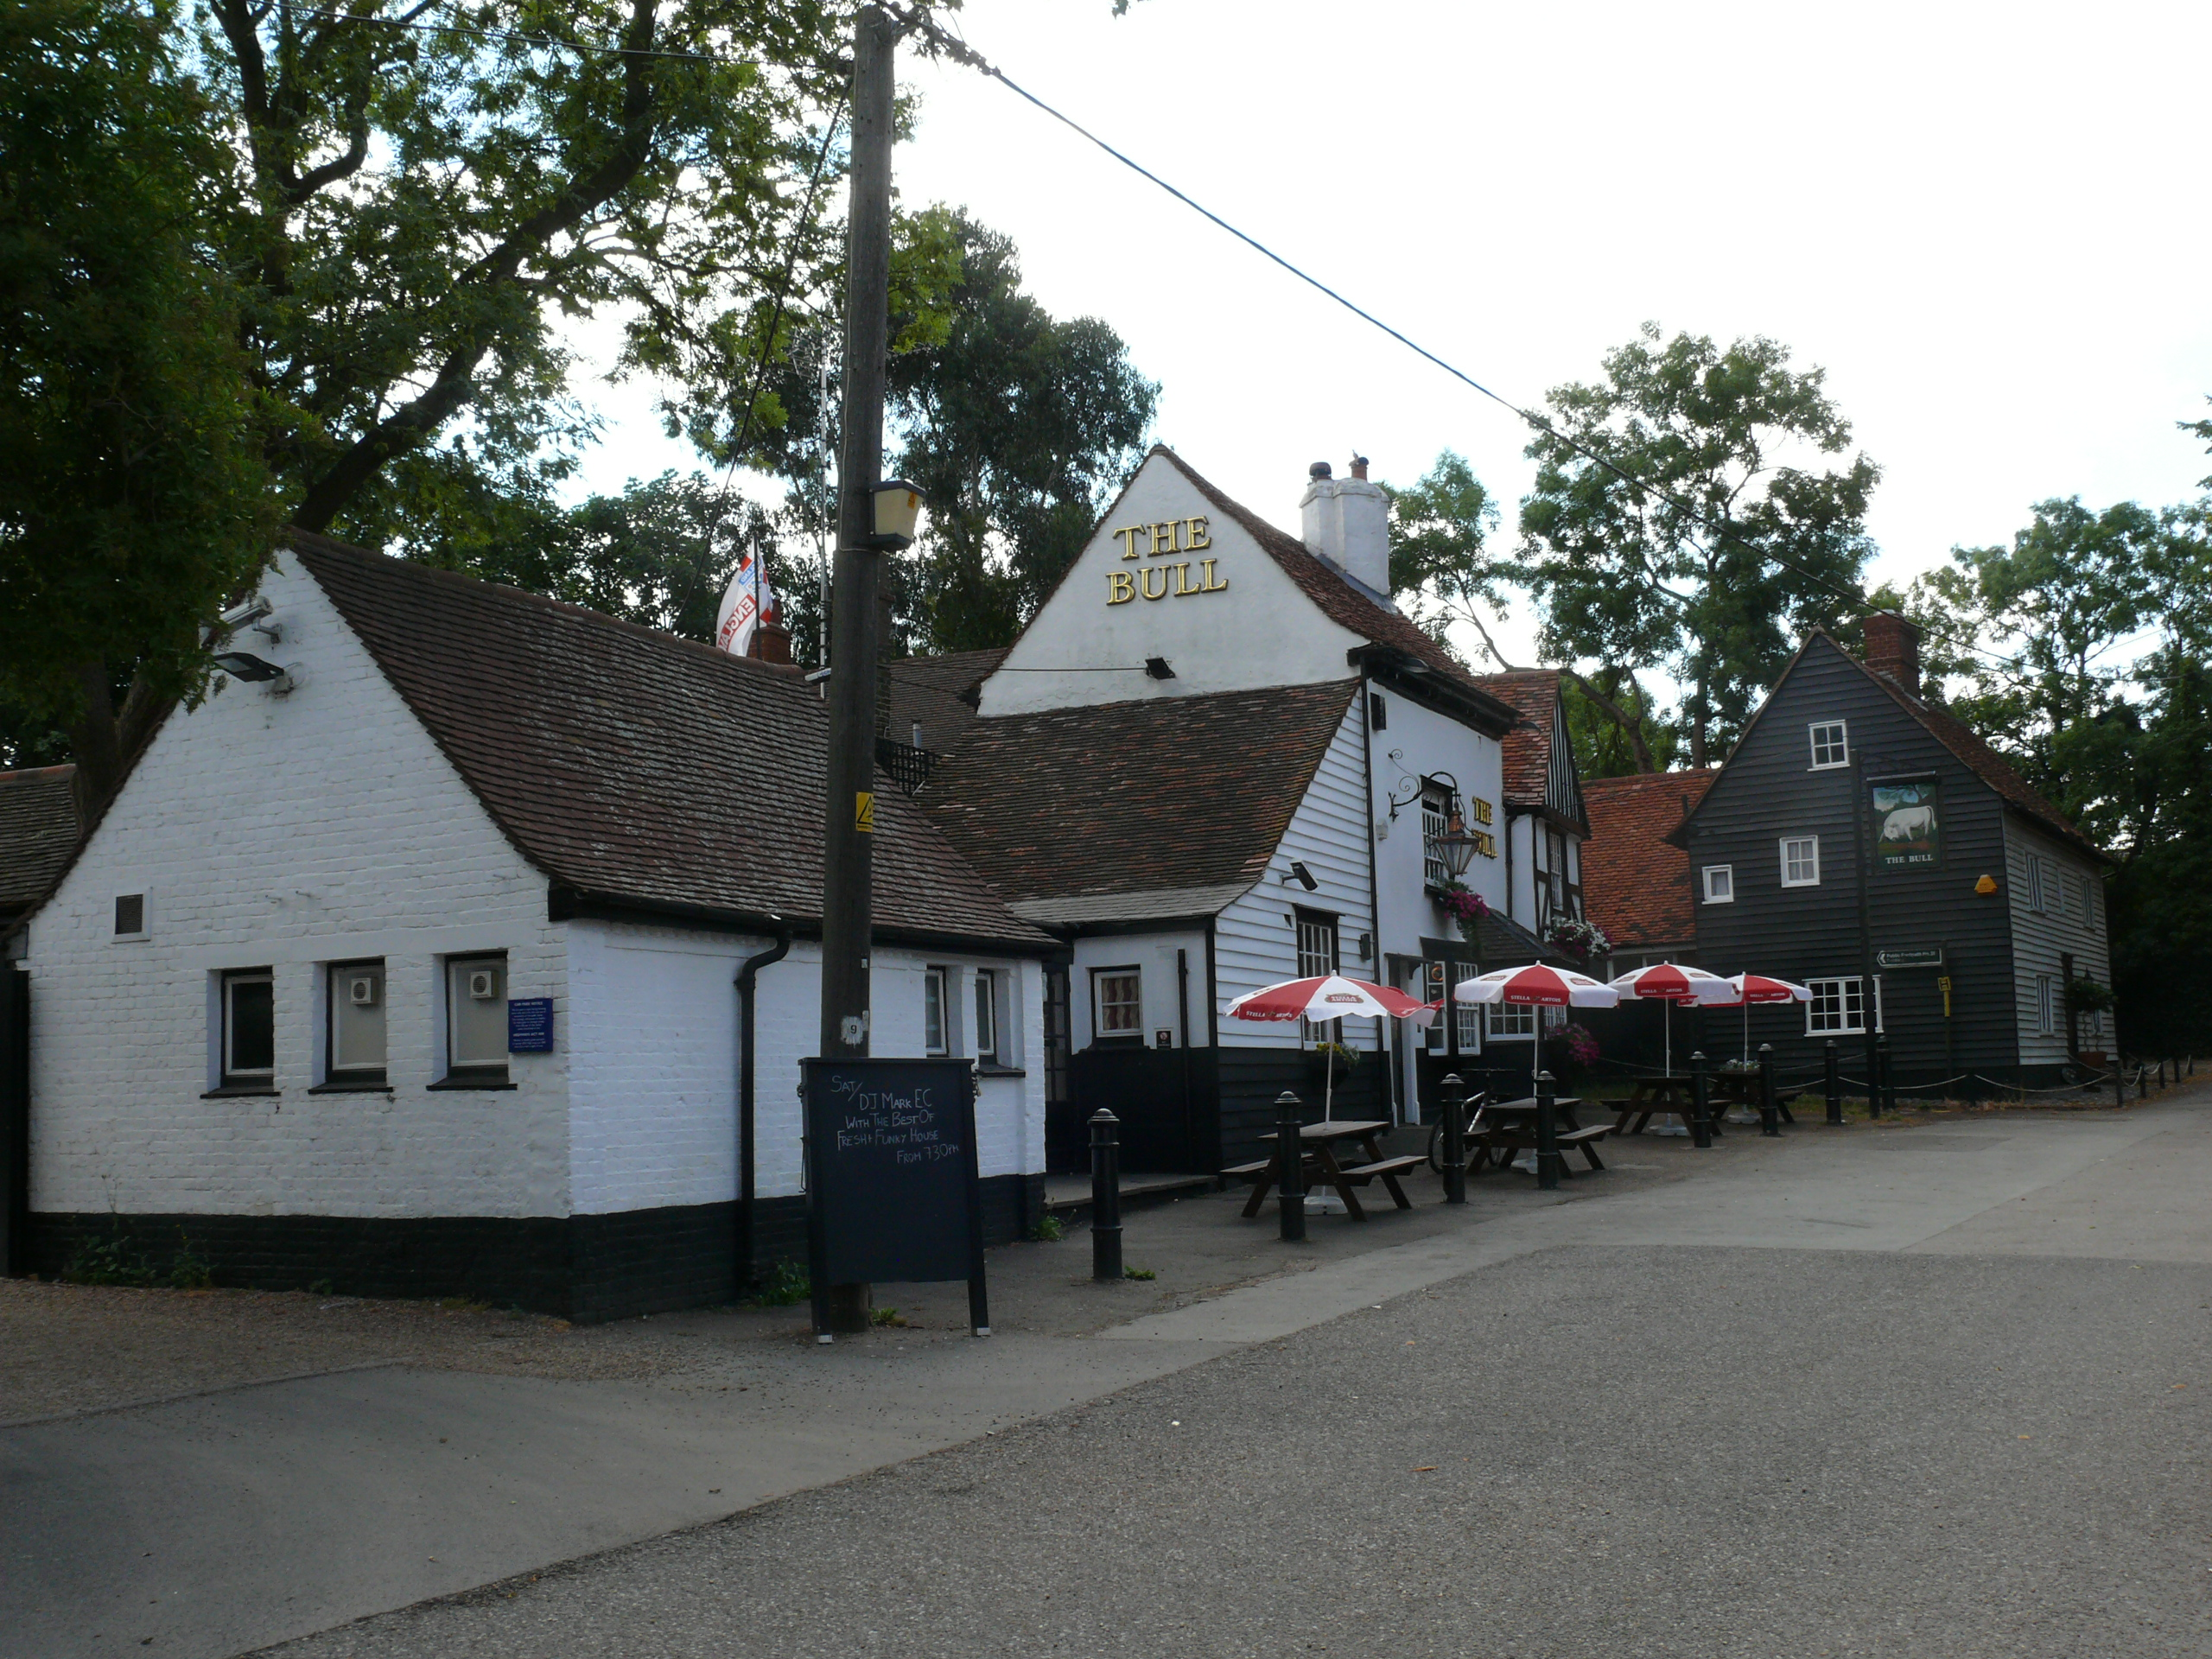 The 15th century Bull public house is part of the Corringham conservation area. It is reputed to have links with smugglers who would bring goods from abroad via the nearby River Thames.